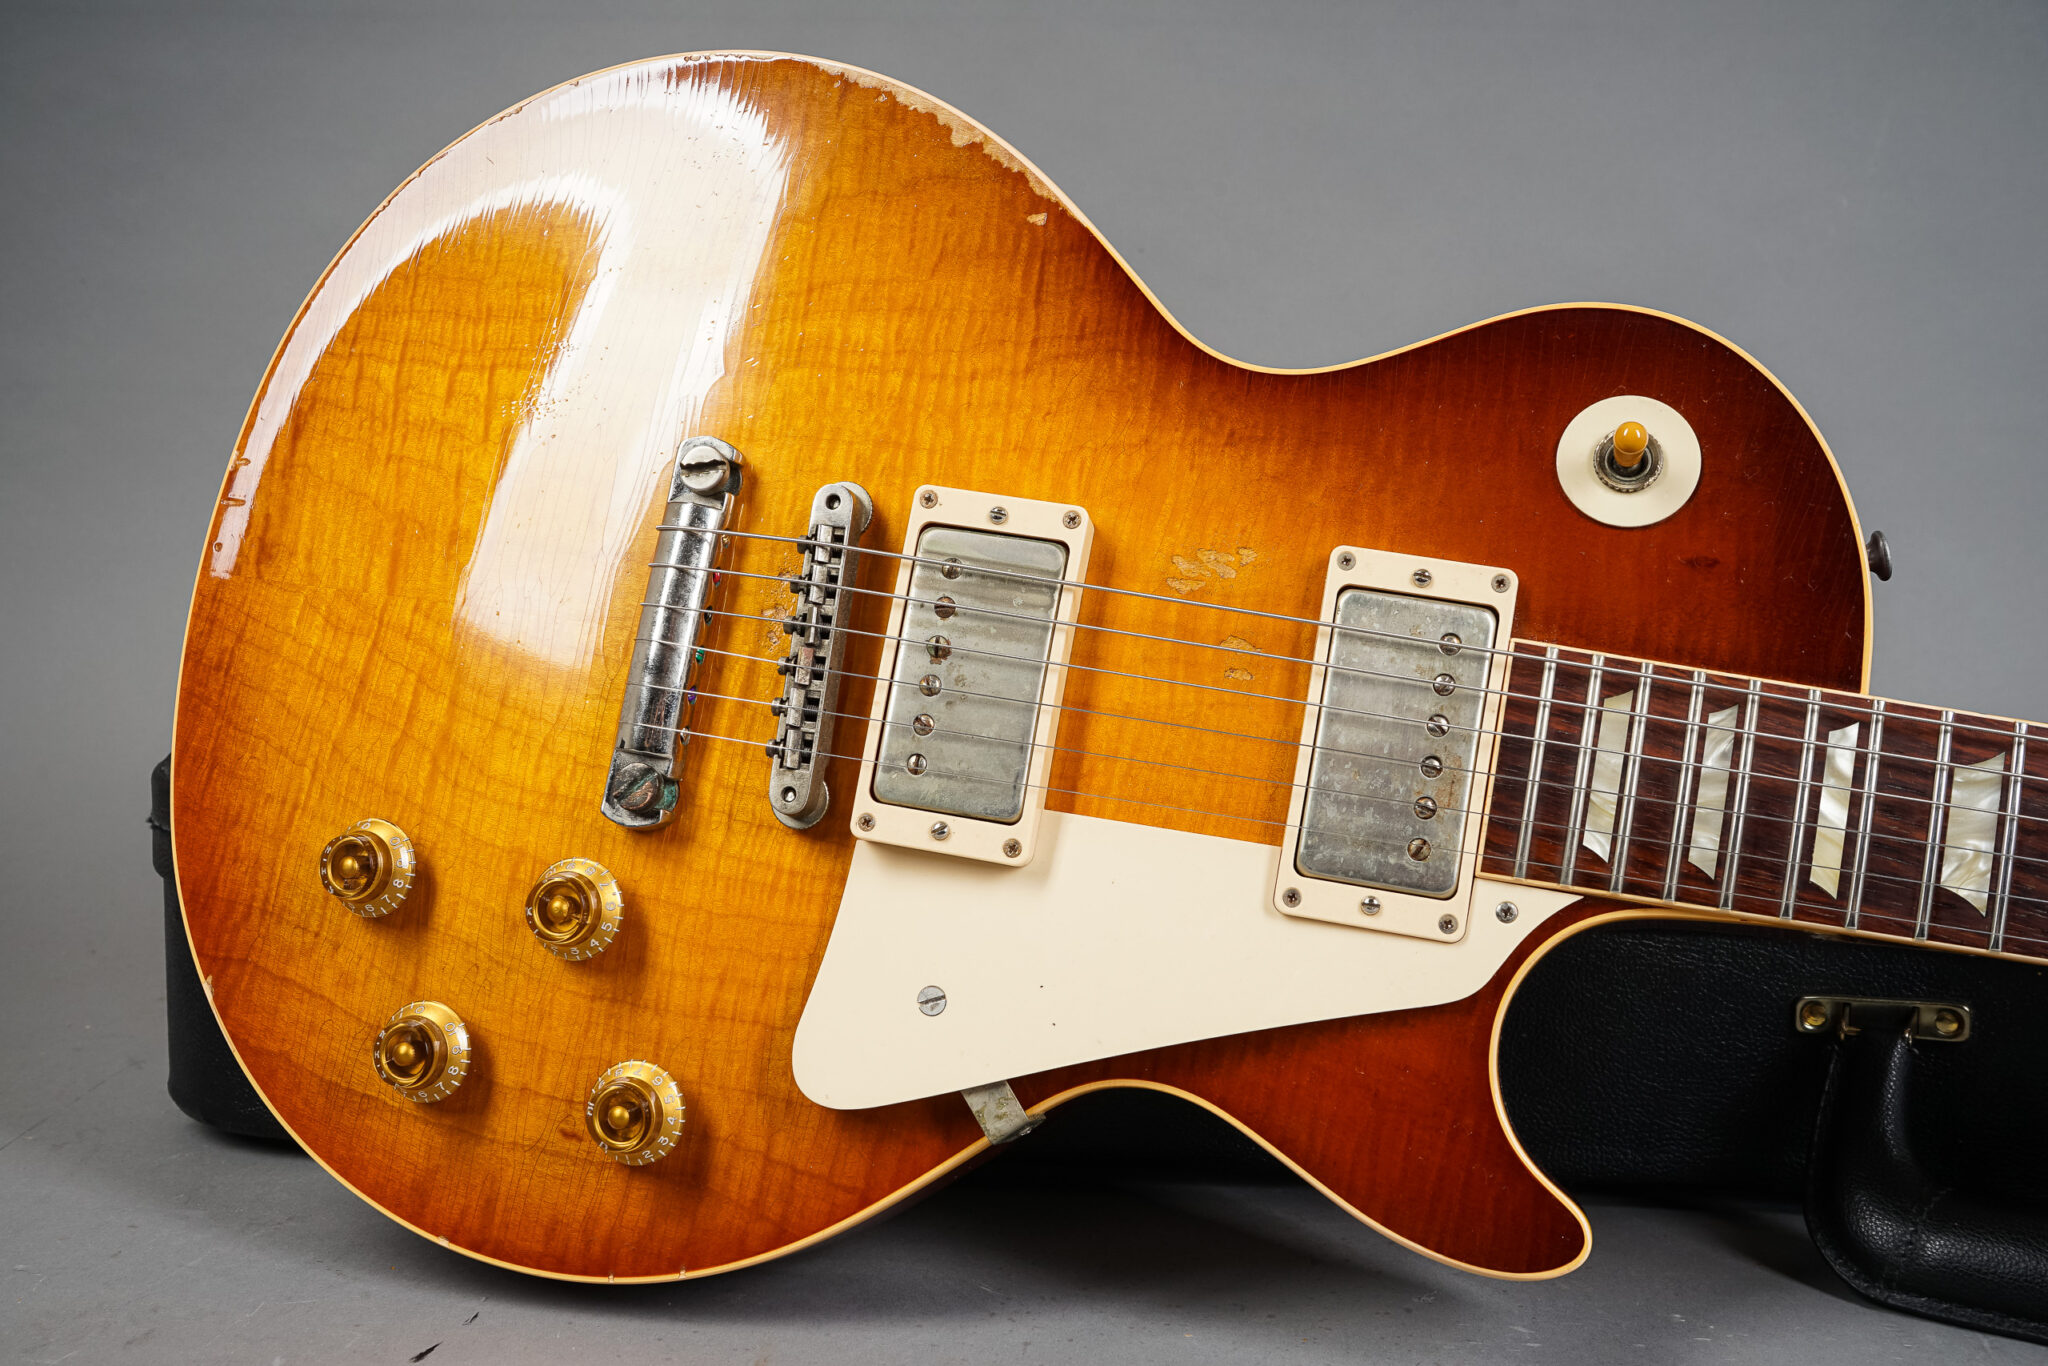 https://guitarpoint.de/app/uploads/products/2009-gibson-les-paul-billy-gibbons-pearly-gates-tom-murphy-aged/2009-Gibson-Les-Paul-Pearly-Gates-Aged-30-25-2048x1366.jpg